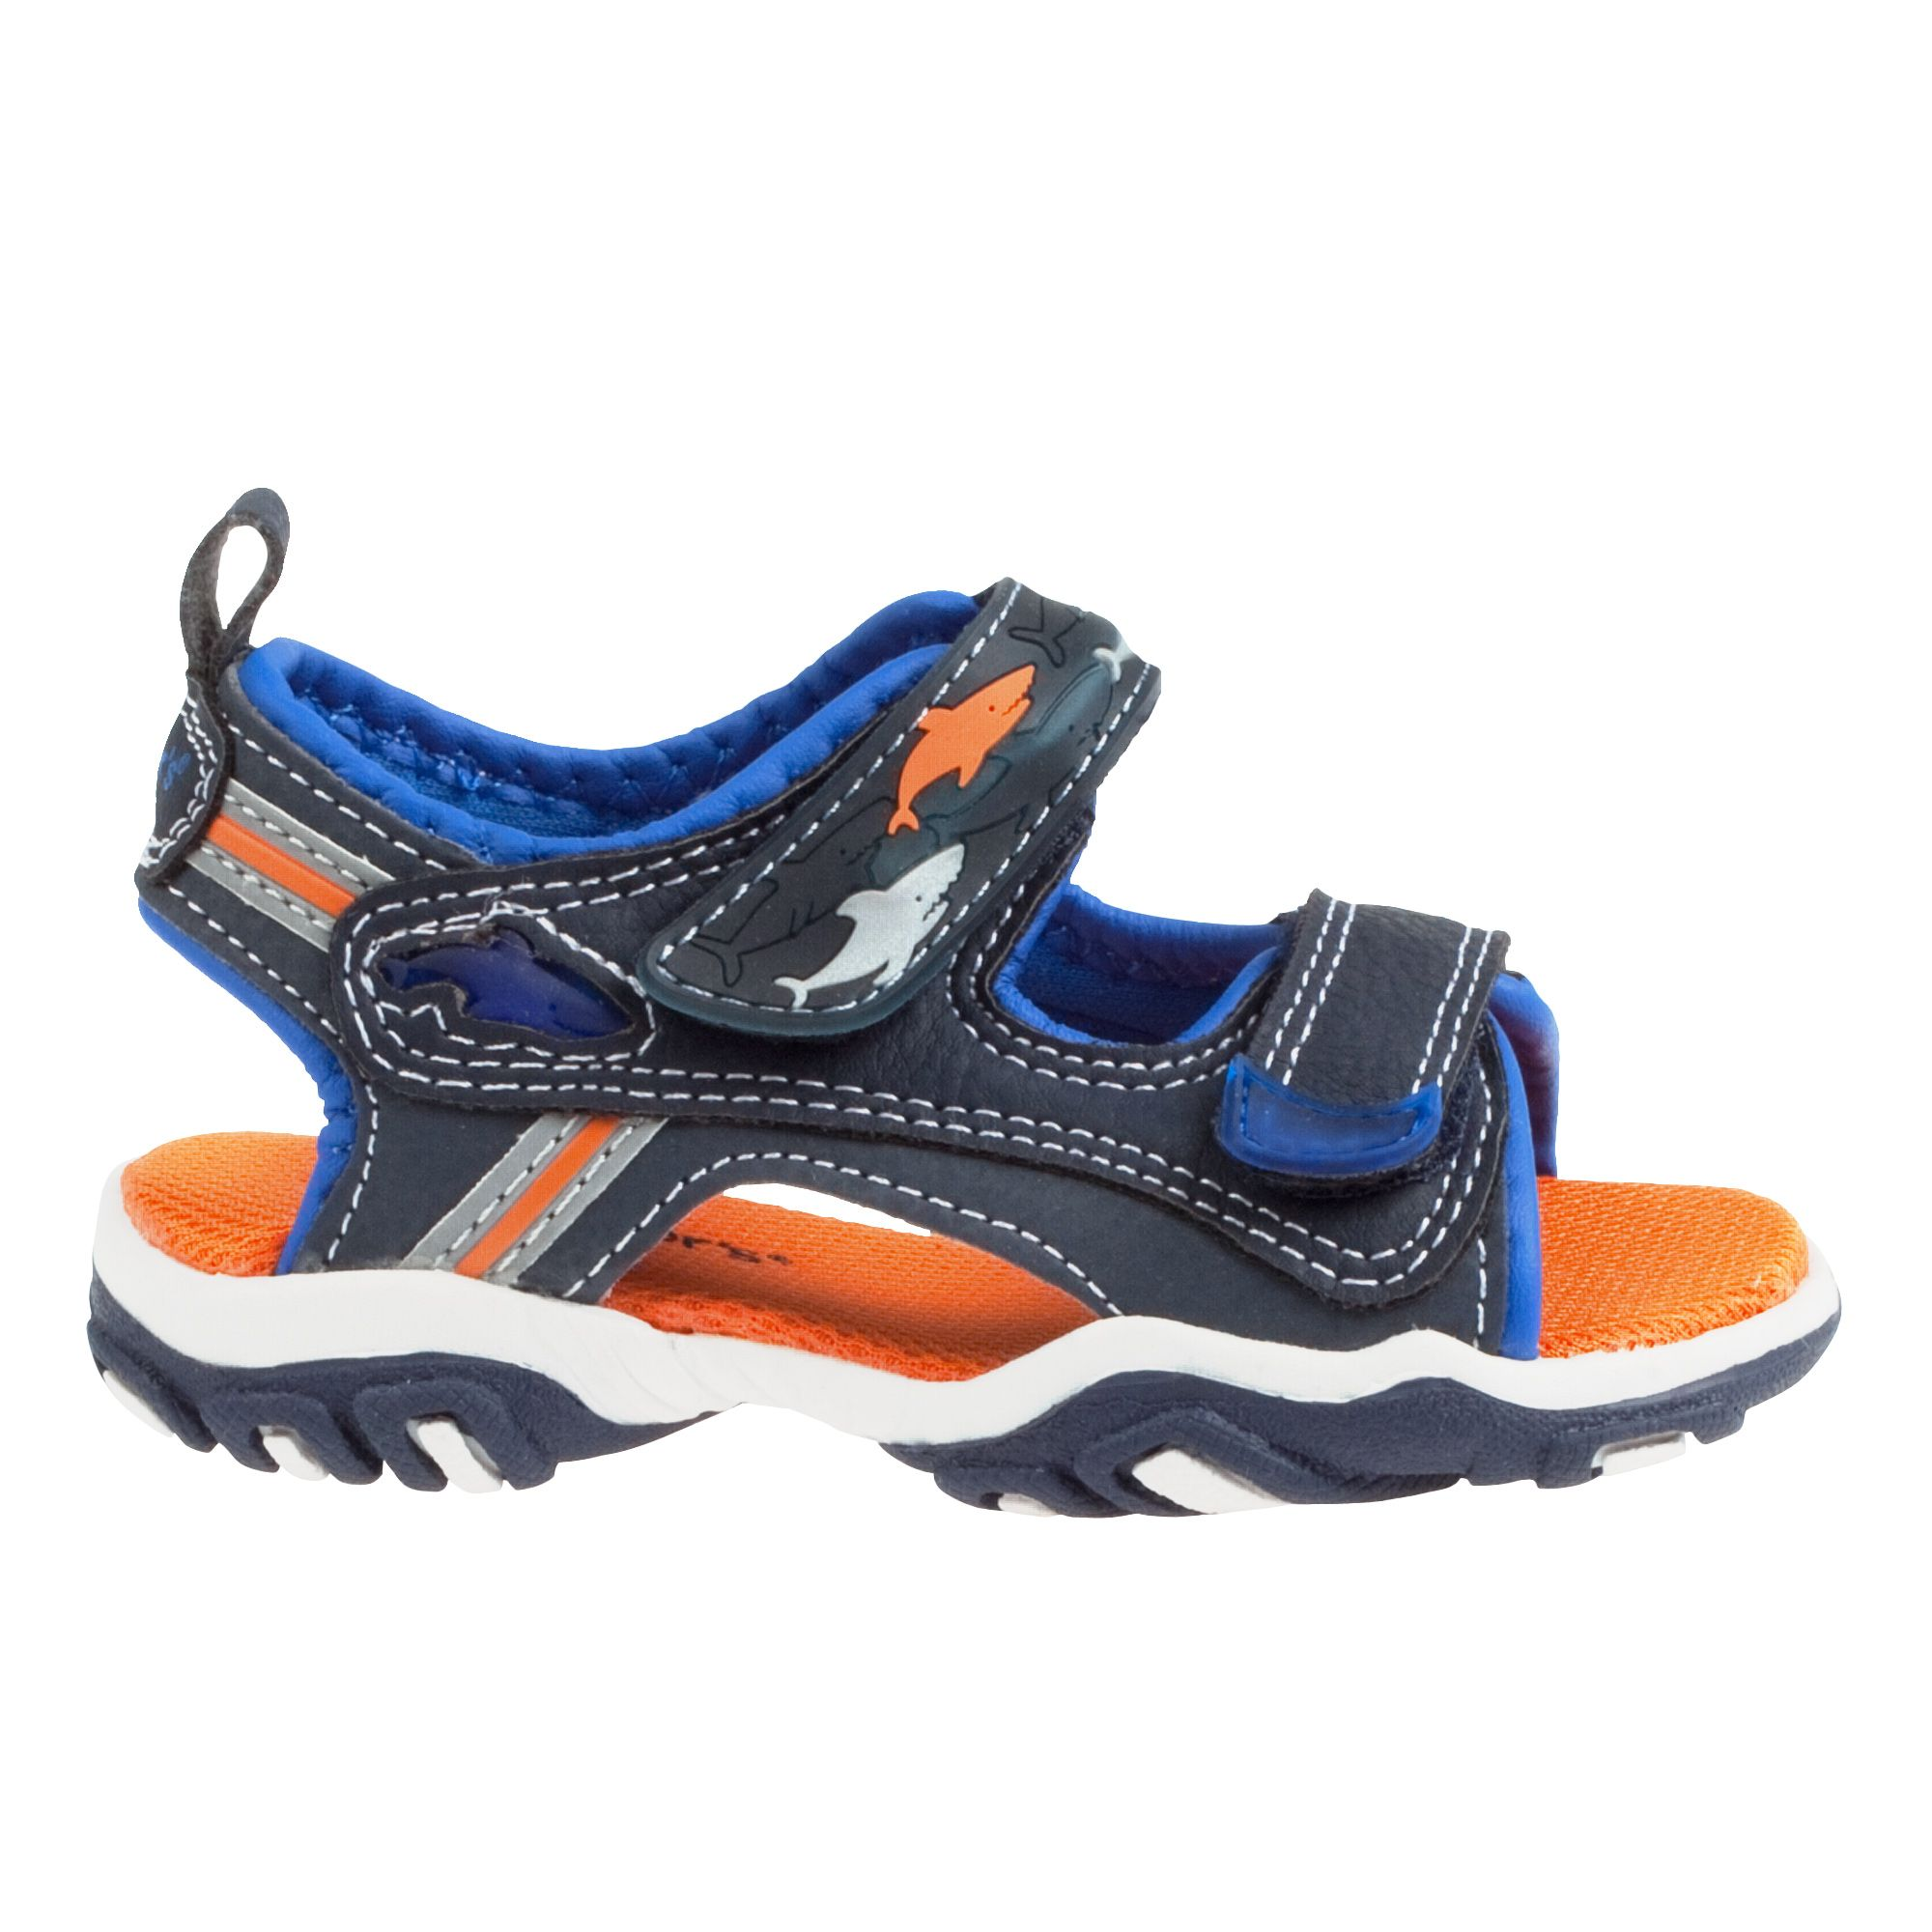 Light Up Sandals Toddler Boy Shoes & Slippers